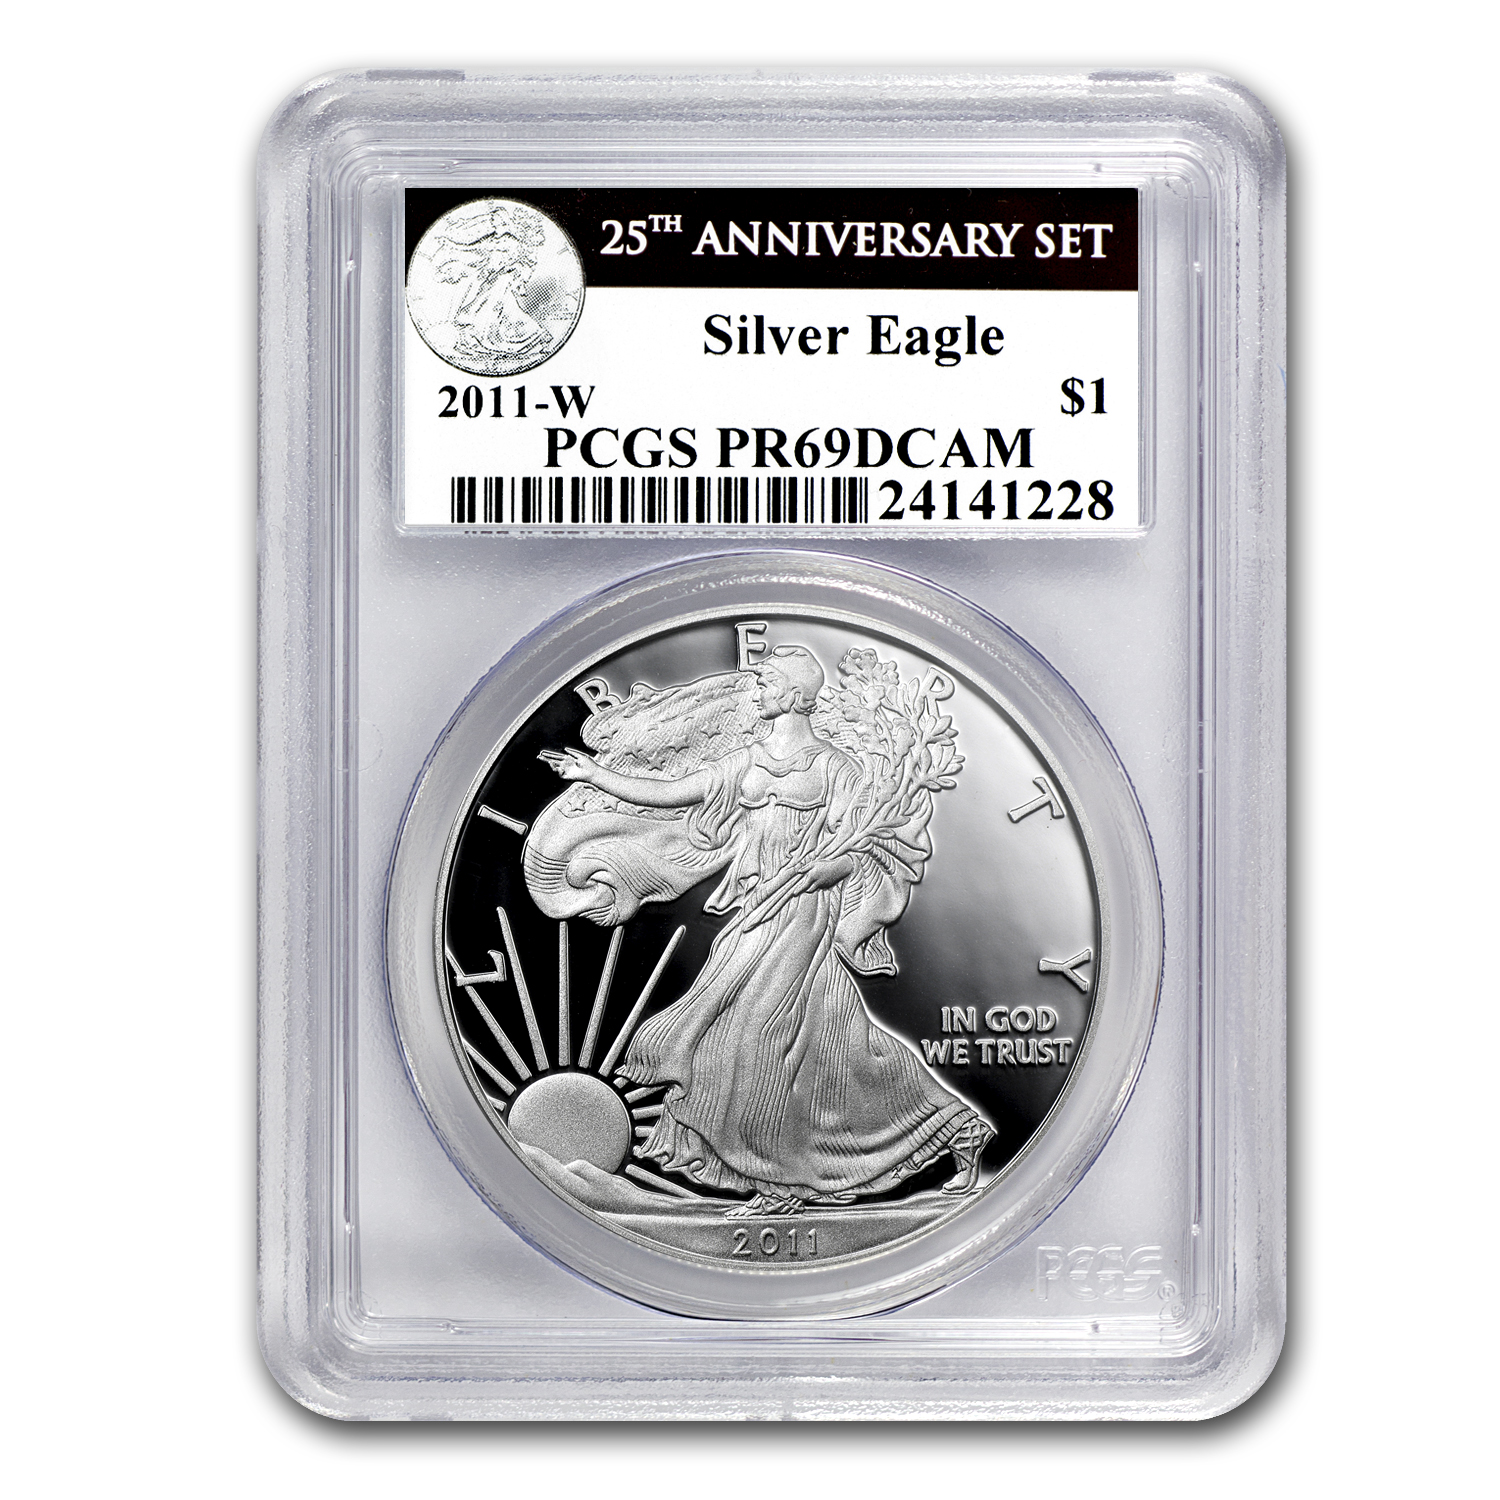 2011-W Proof Silver Eagle PR-69 PCGS (25th Anniv, Black Label)